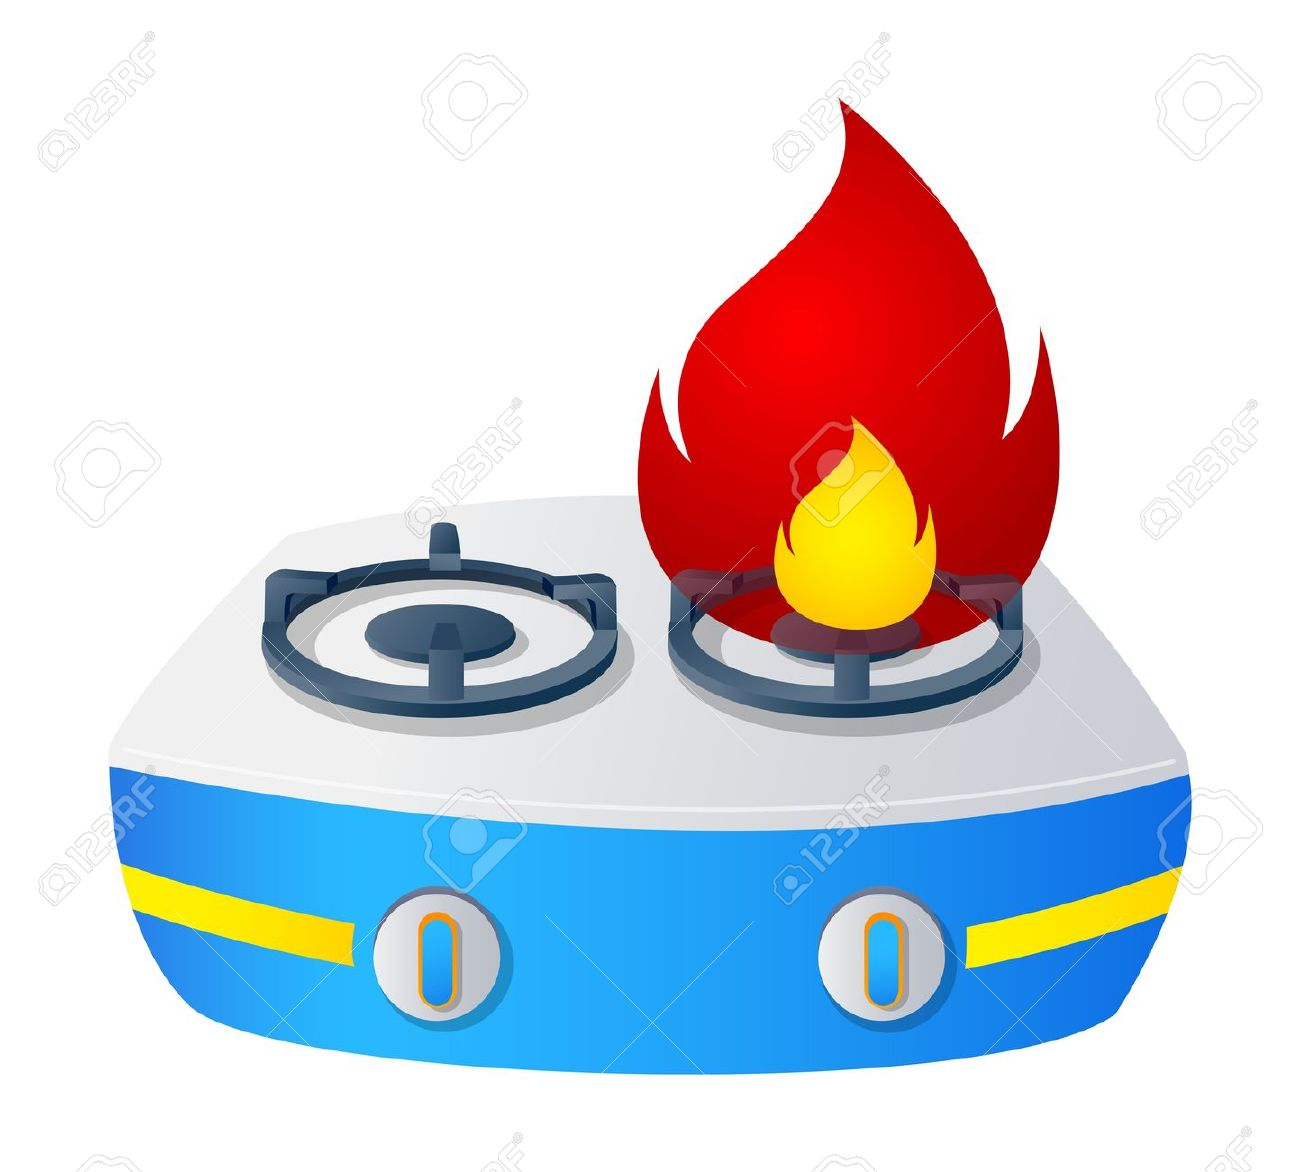 Gas Cooker clipart Fire Stove Stove cliparts Clipart